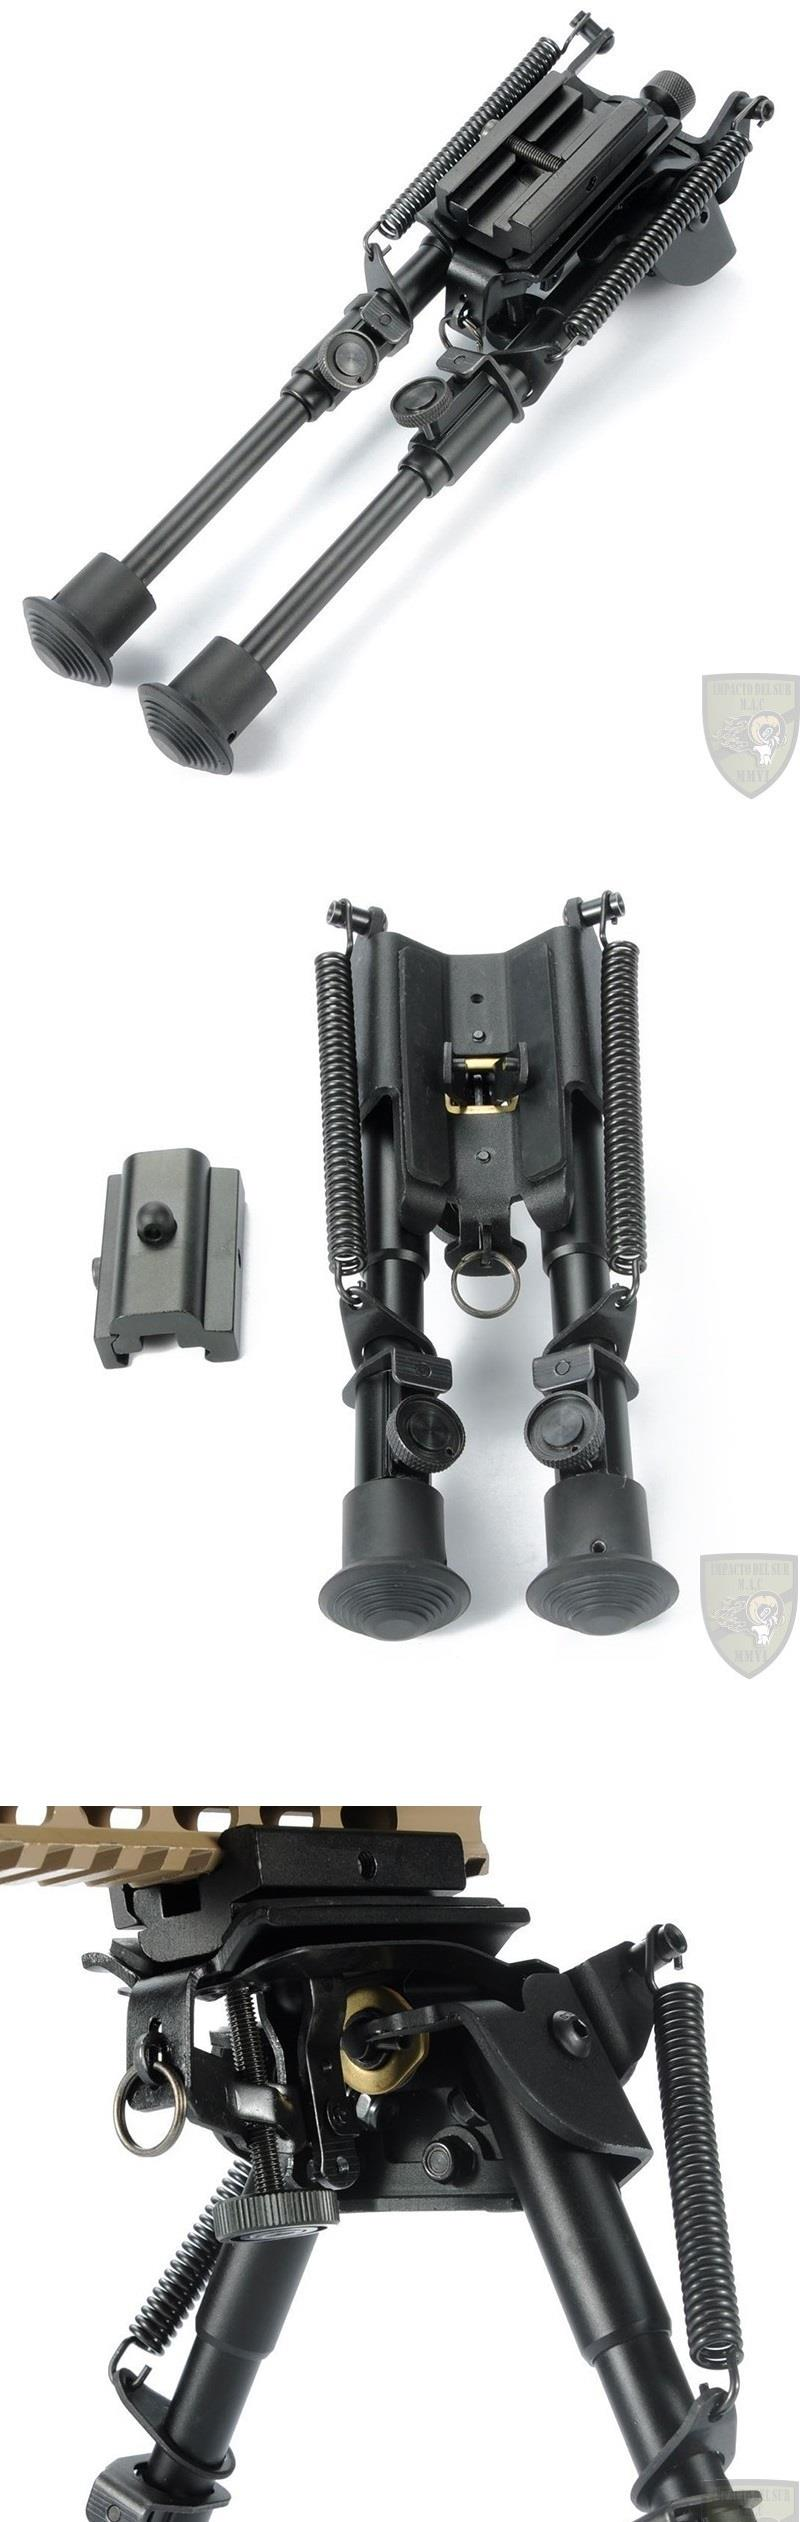 TACTICAL 6' M3 BIPOD